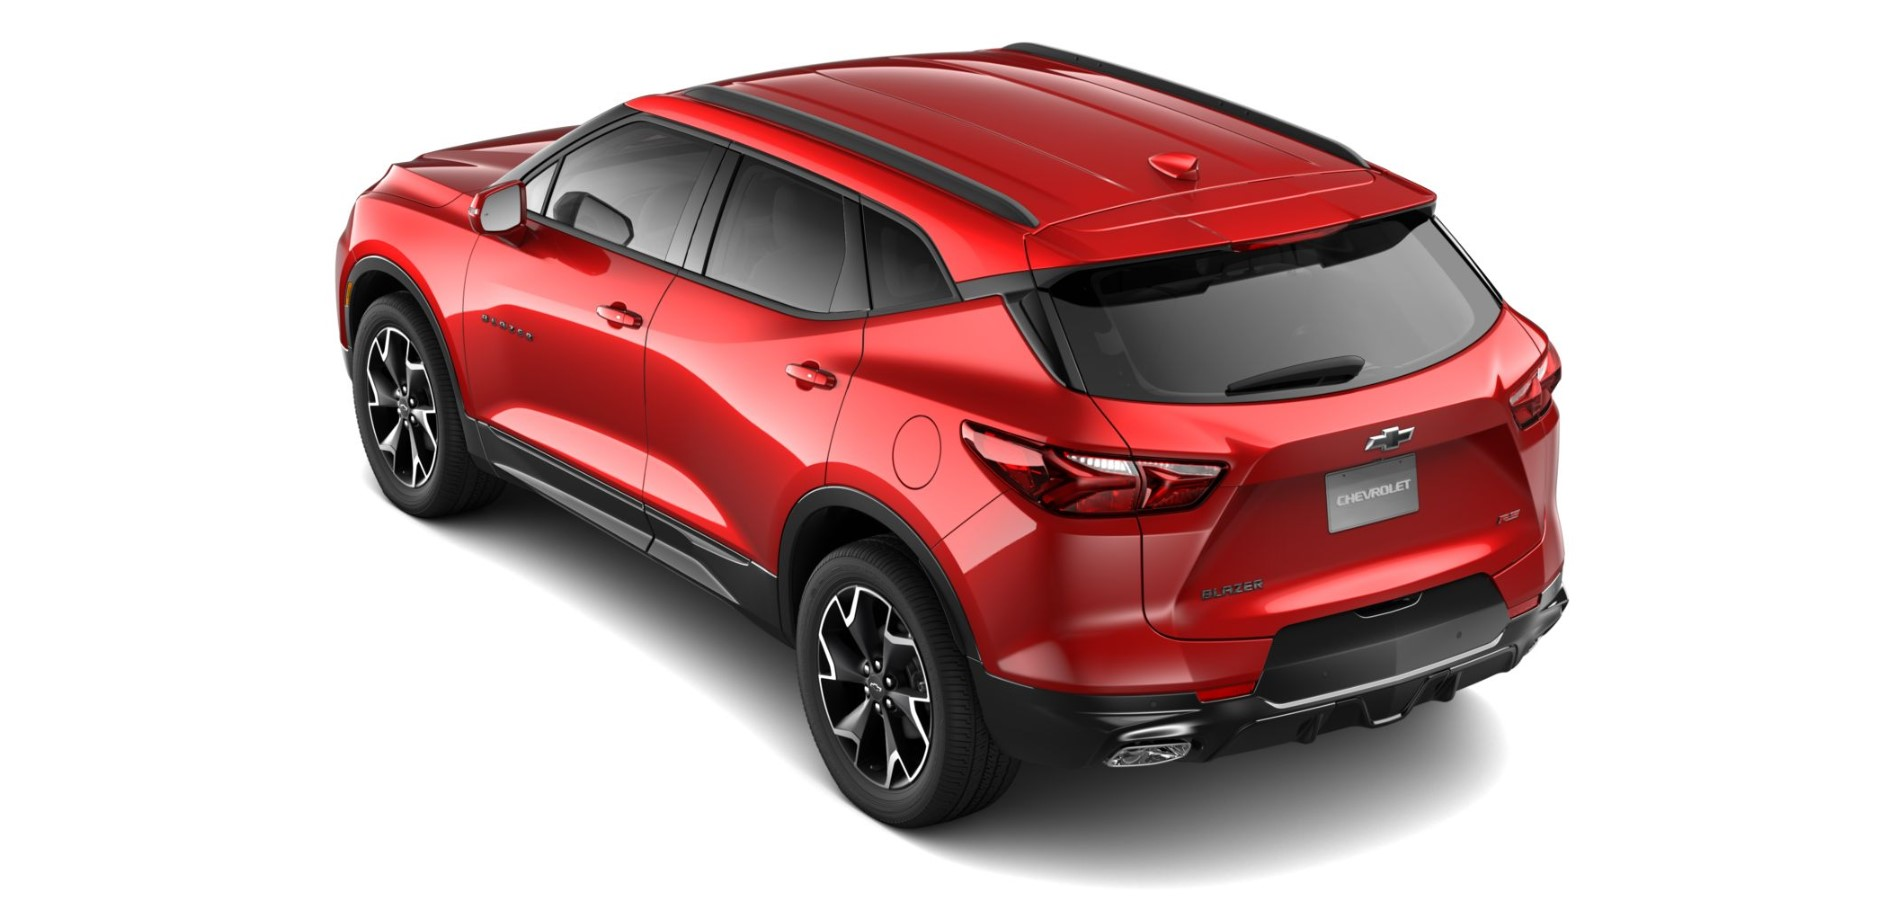 2019 Chevrolet Blazer RS Rear Red Exterior